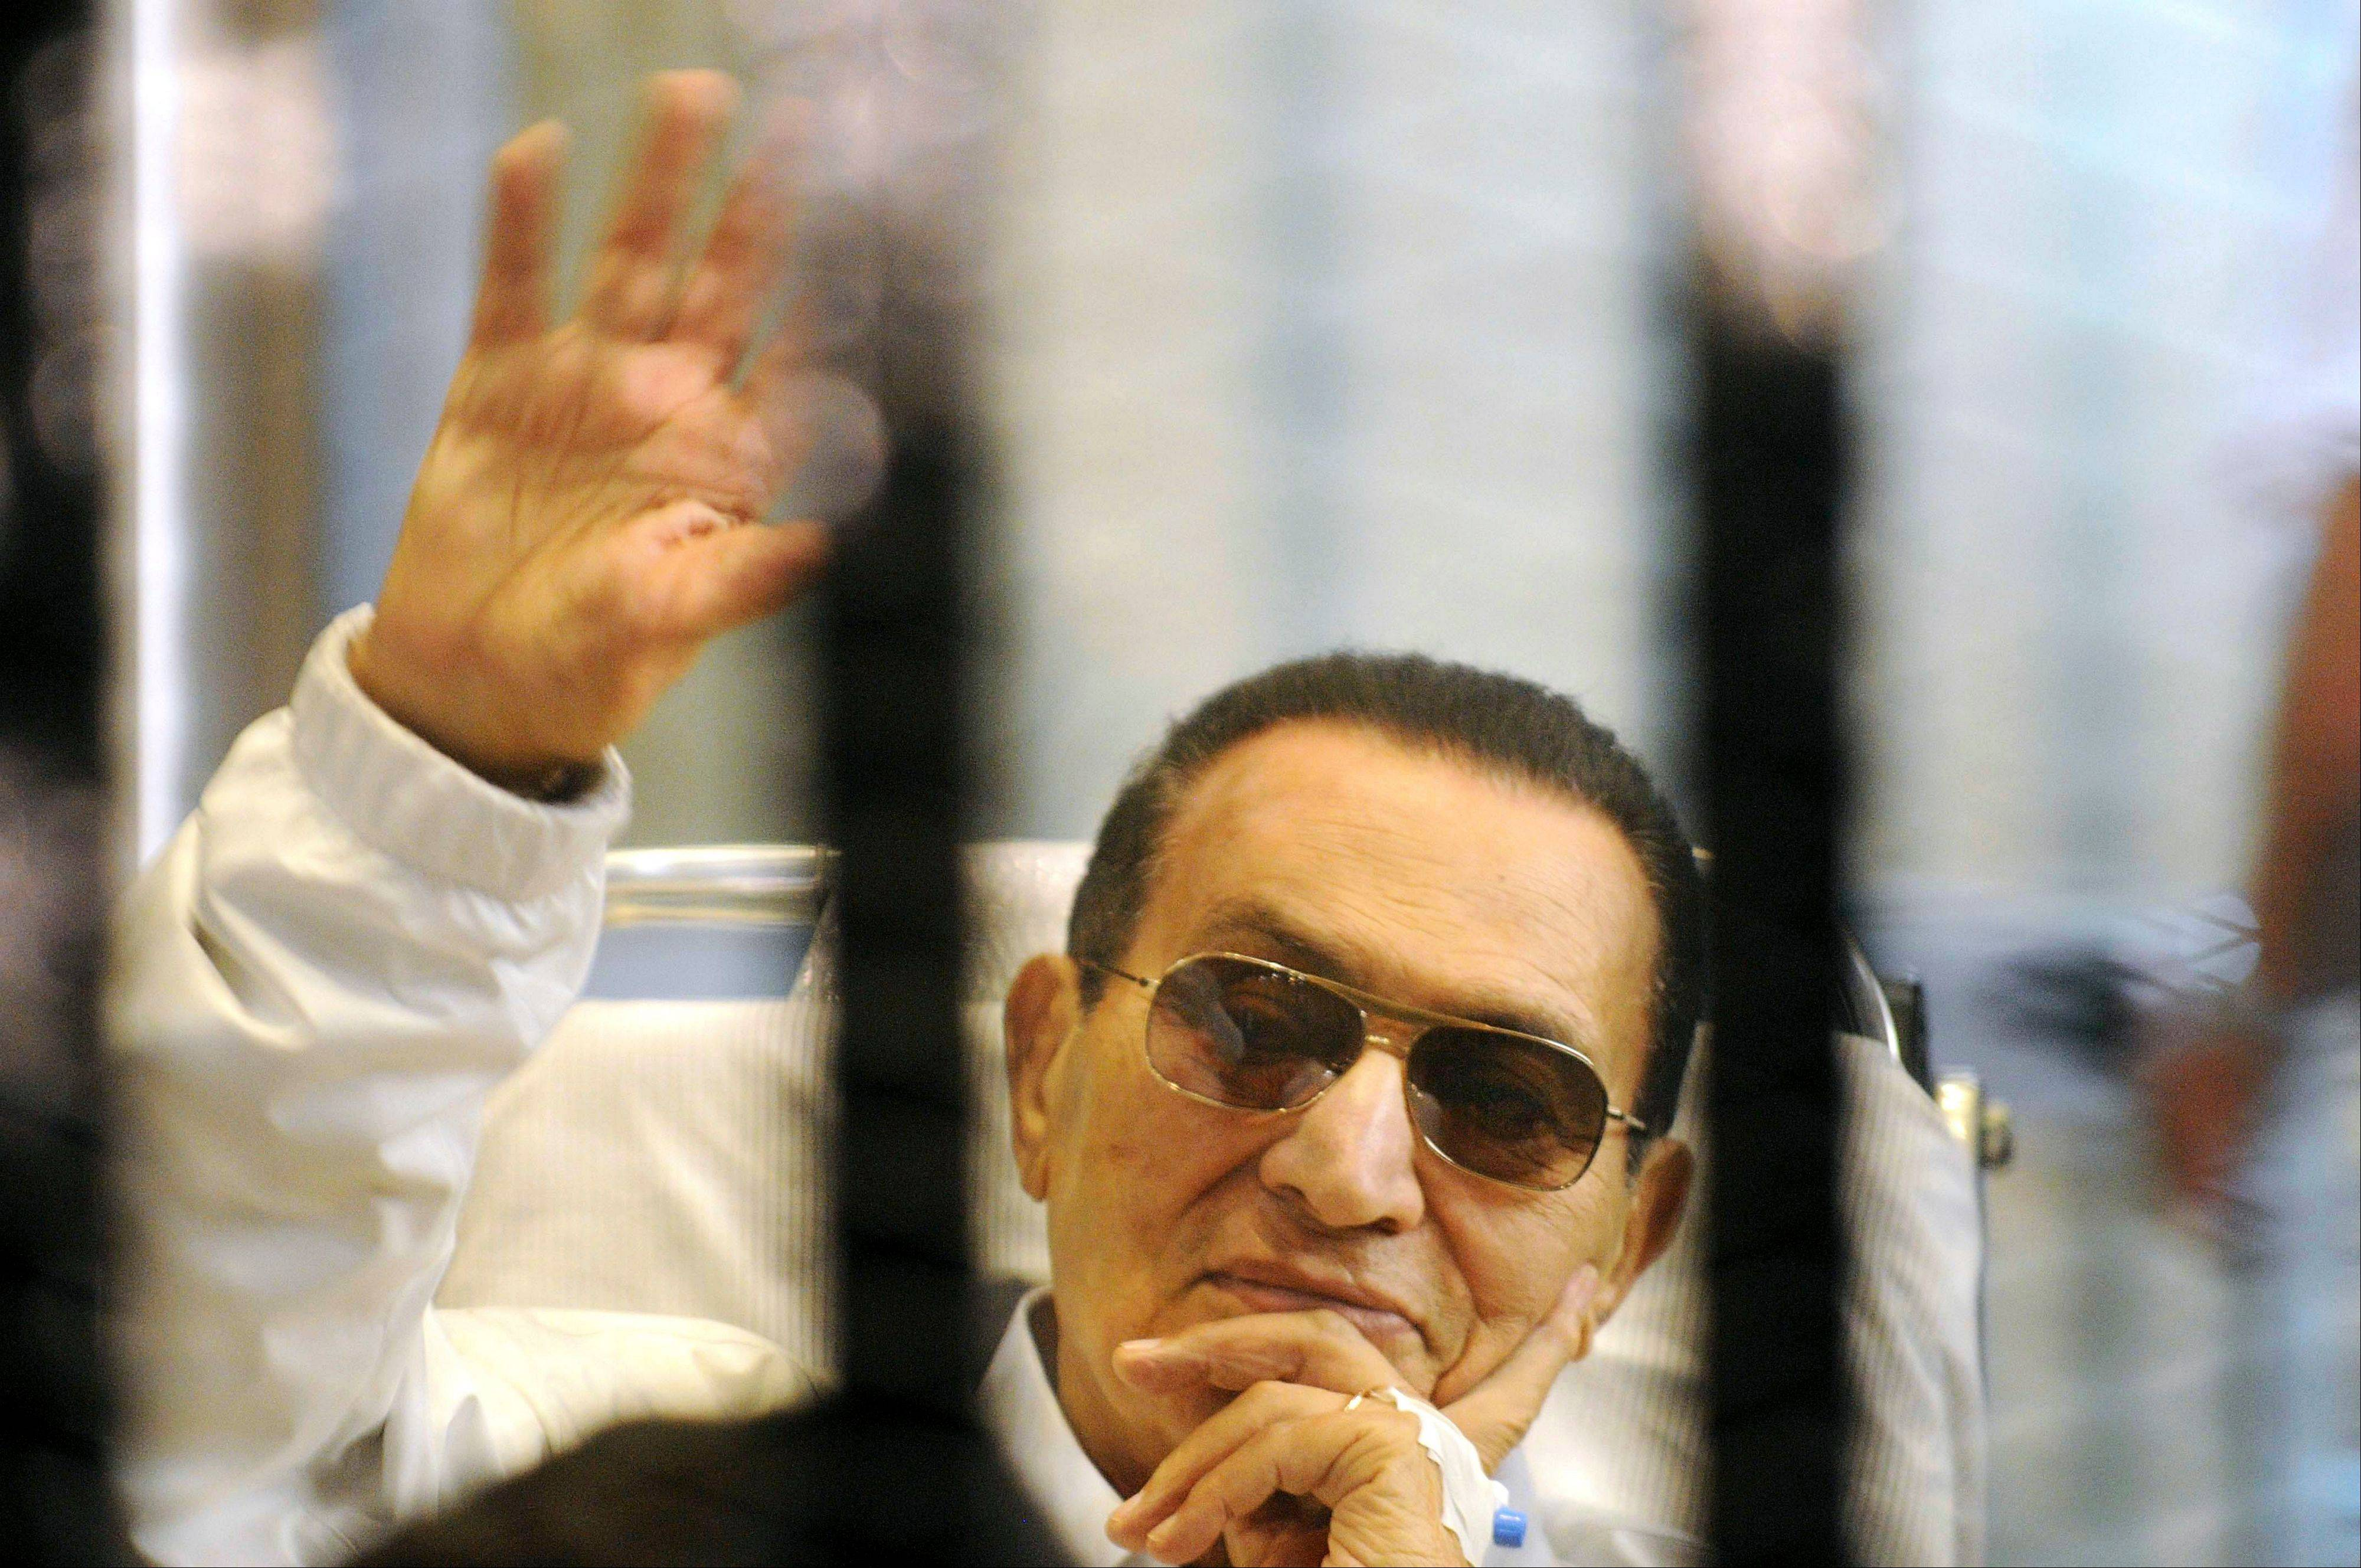 Former Egyptian President Hosni Mubarak waves to his supporters from behind bars as he attends a hearing in his retrial on appeal in Cairo, Egypt.